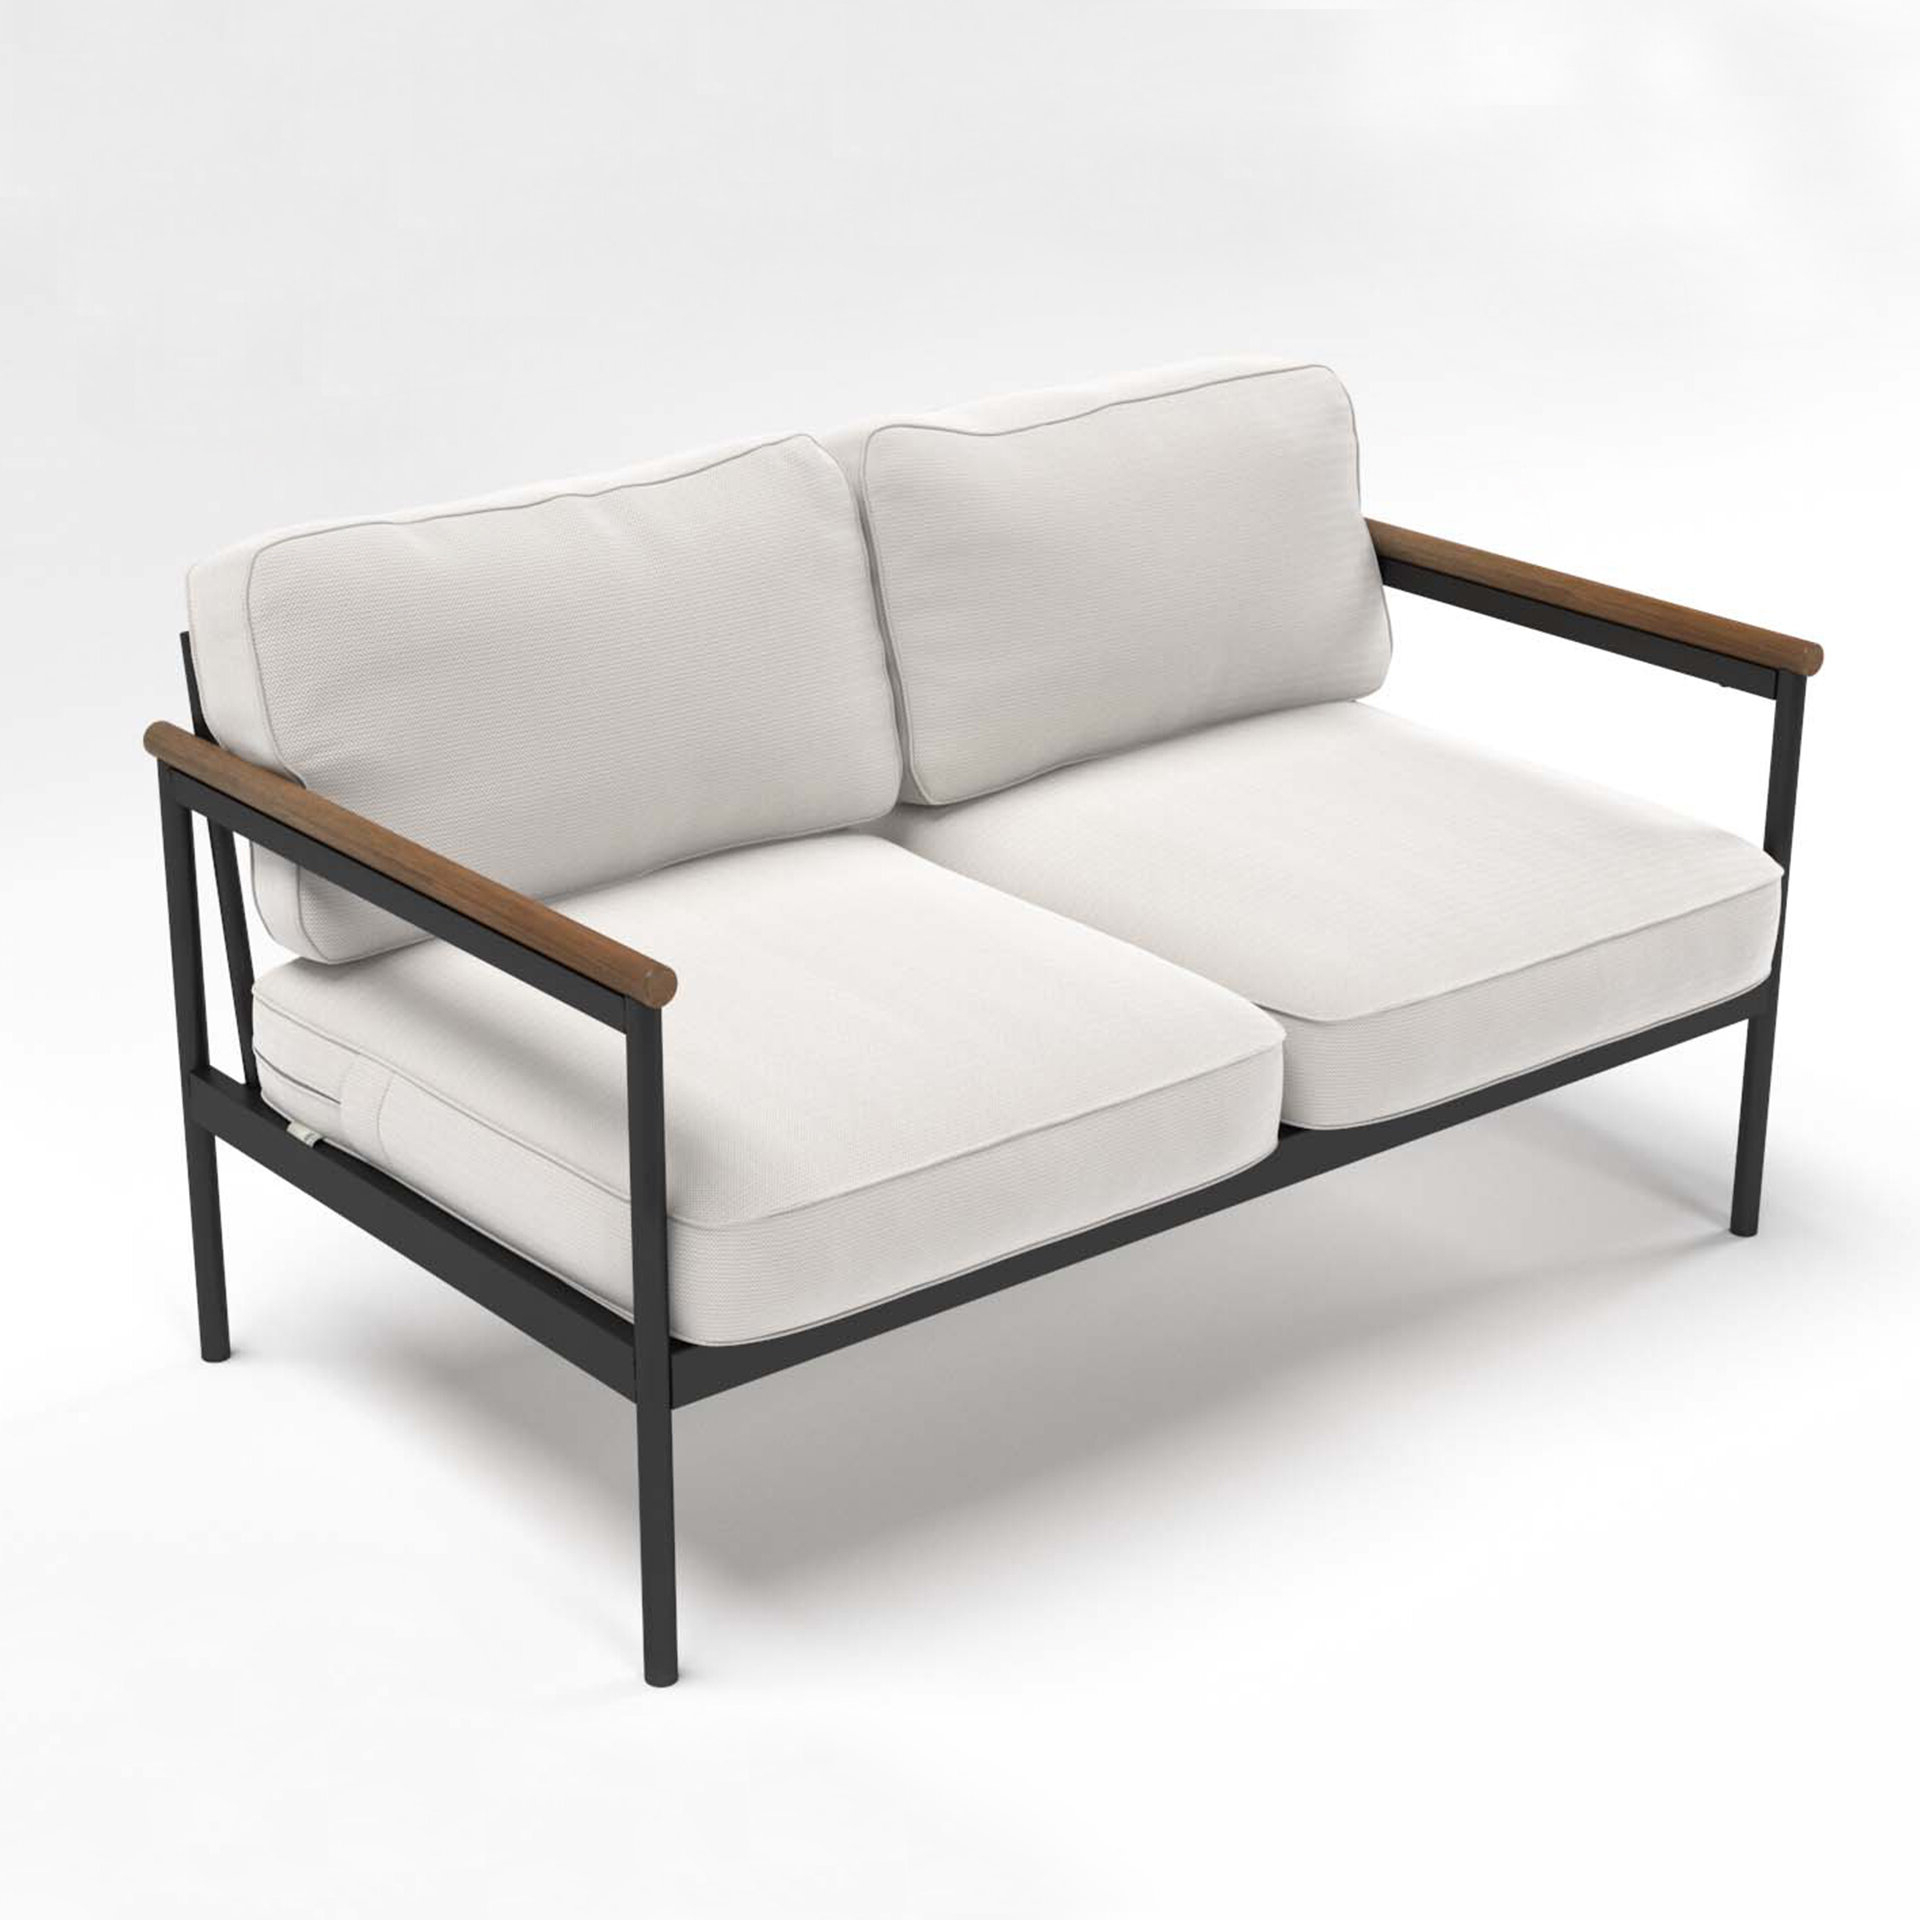 Freitag Loveseats With Cushions Inside 2020 Outdoor Loveseat With Cushions (View 5 of 20)